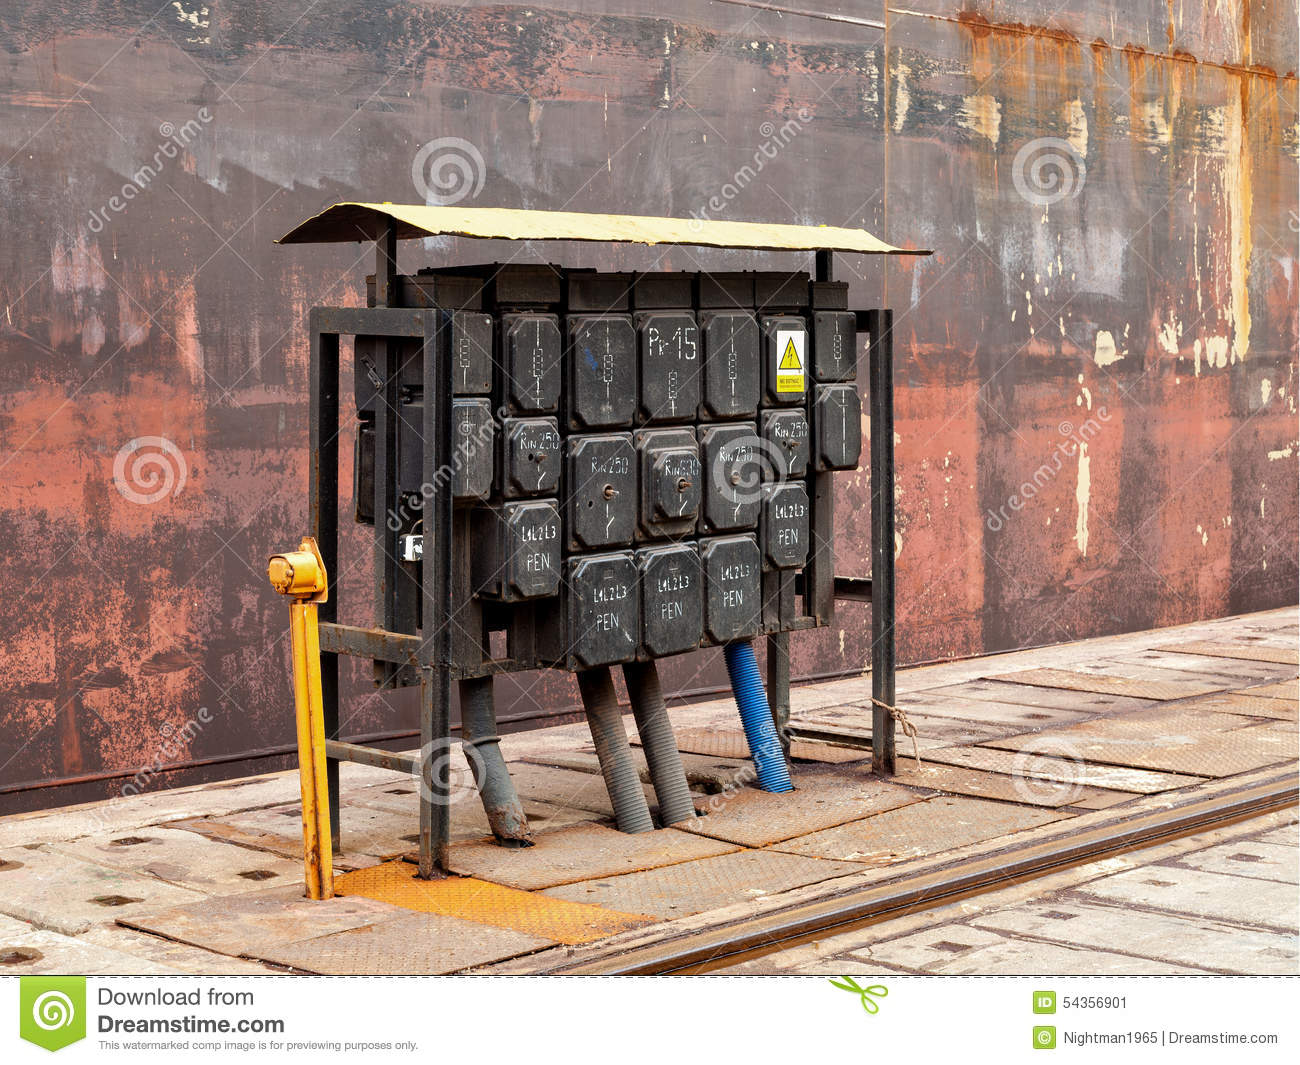 Electrical Switching Station Stock Image - Image of station ...